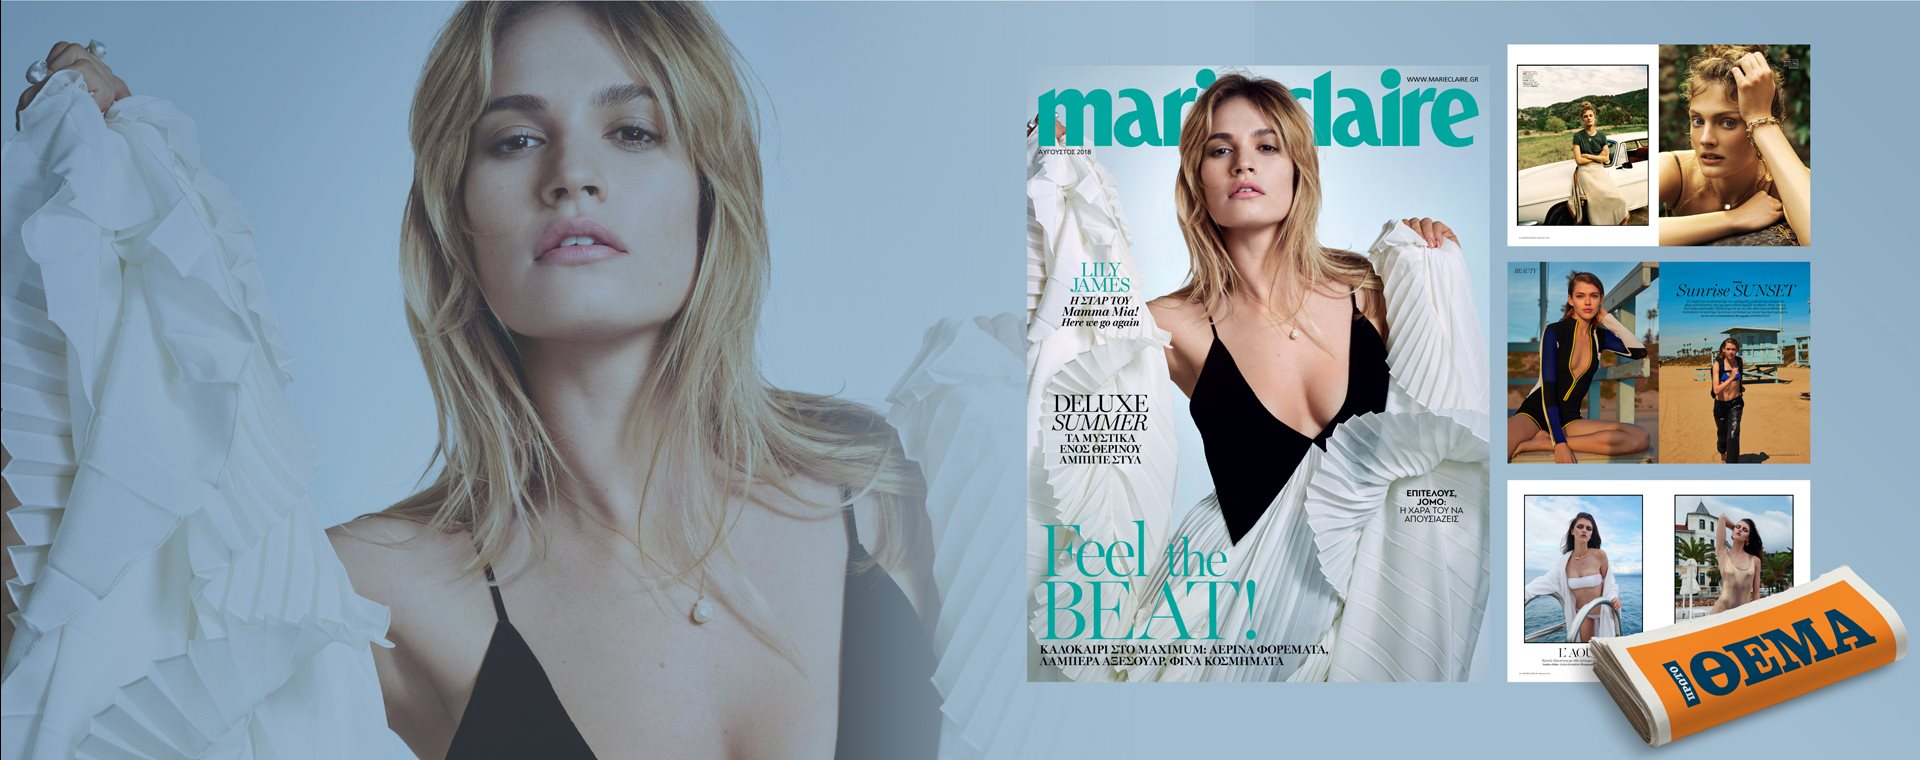 marie-claire_main01